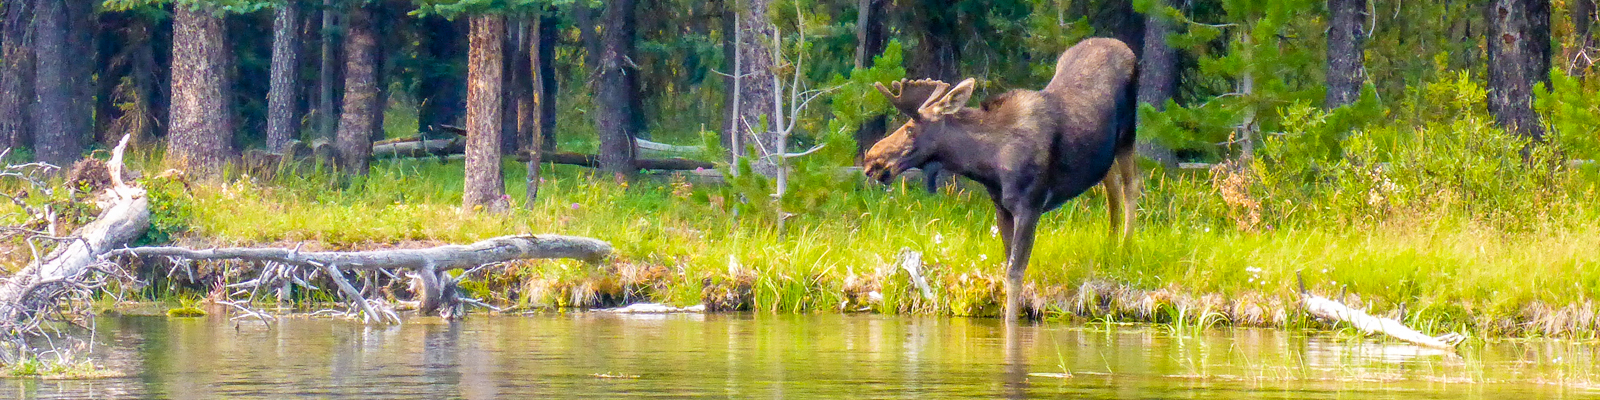 moose on the bank of a river